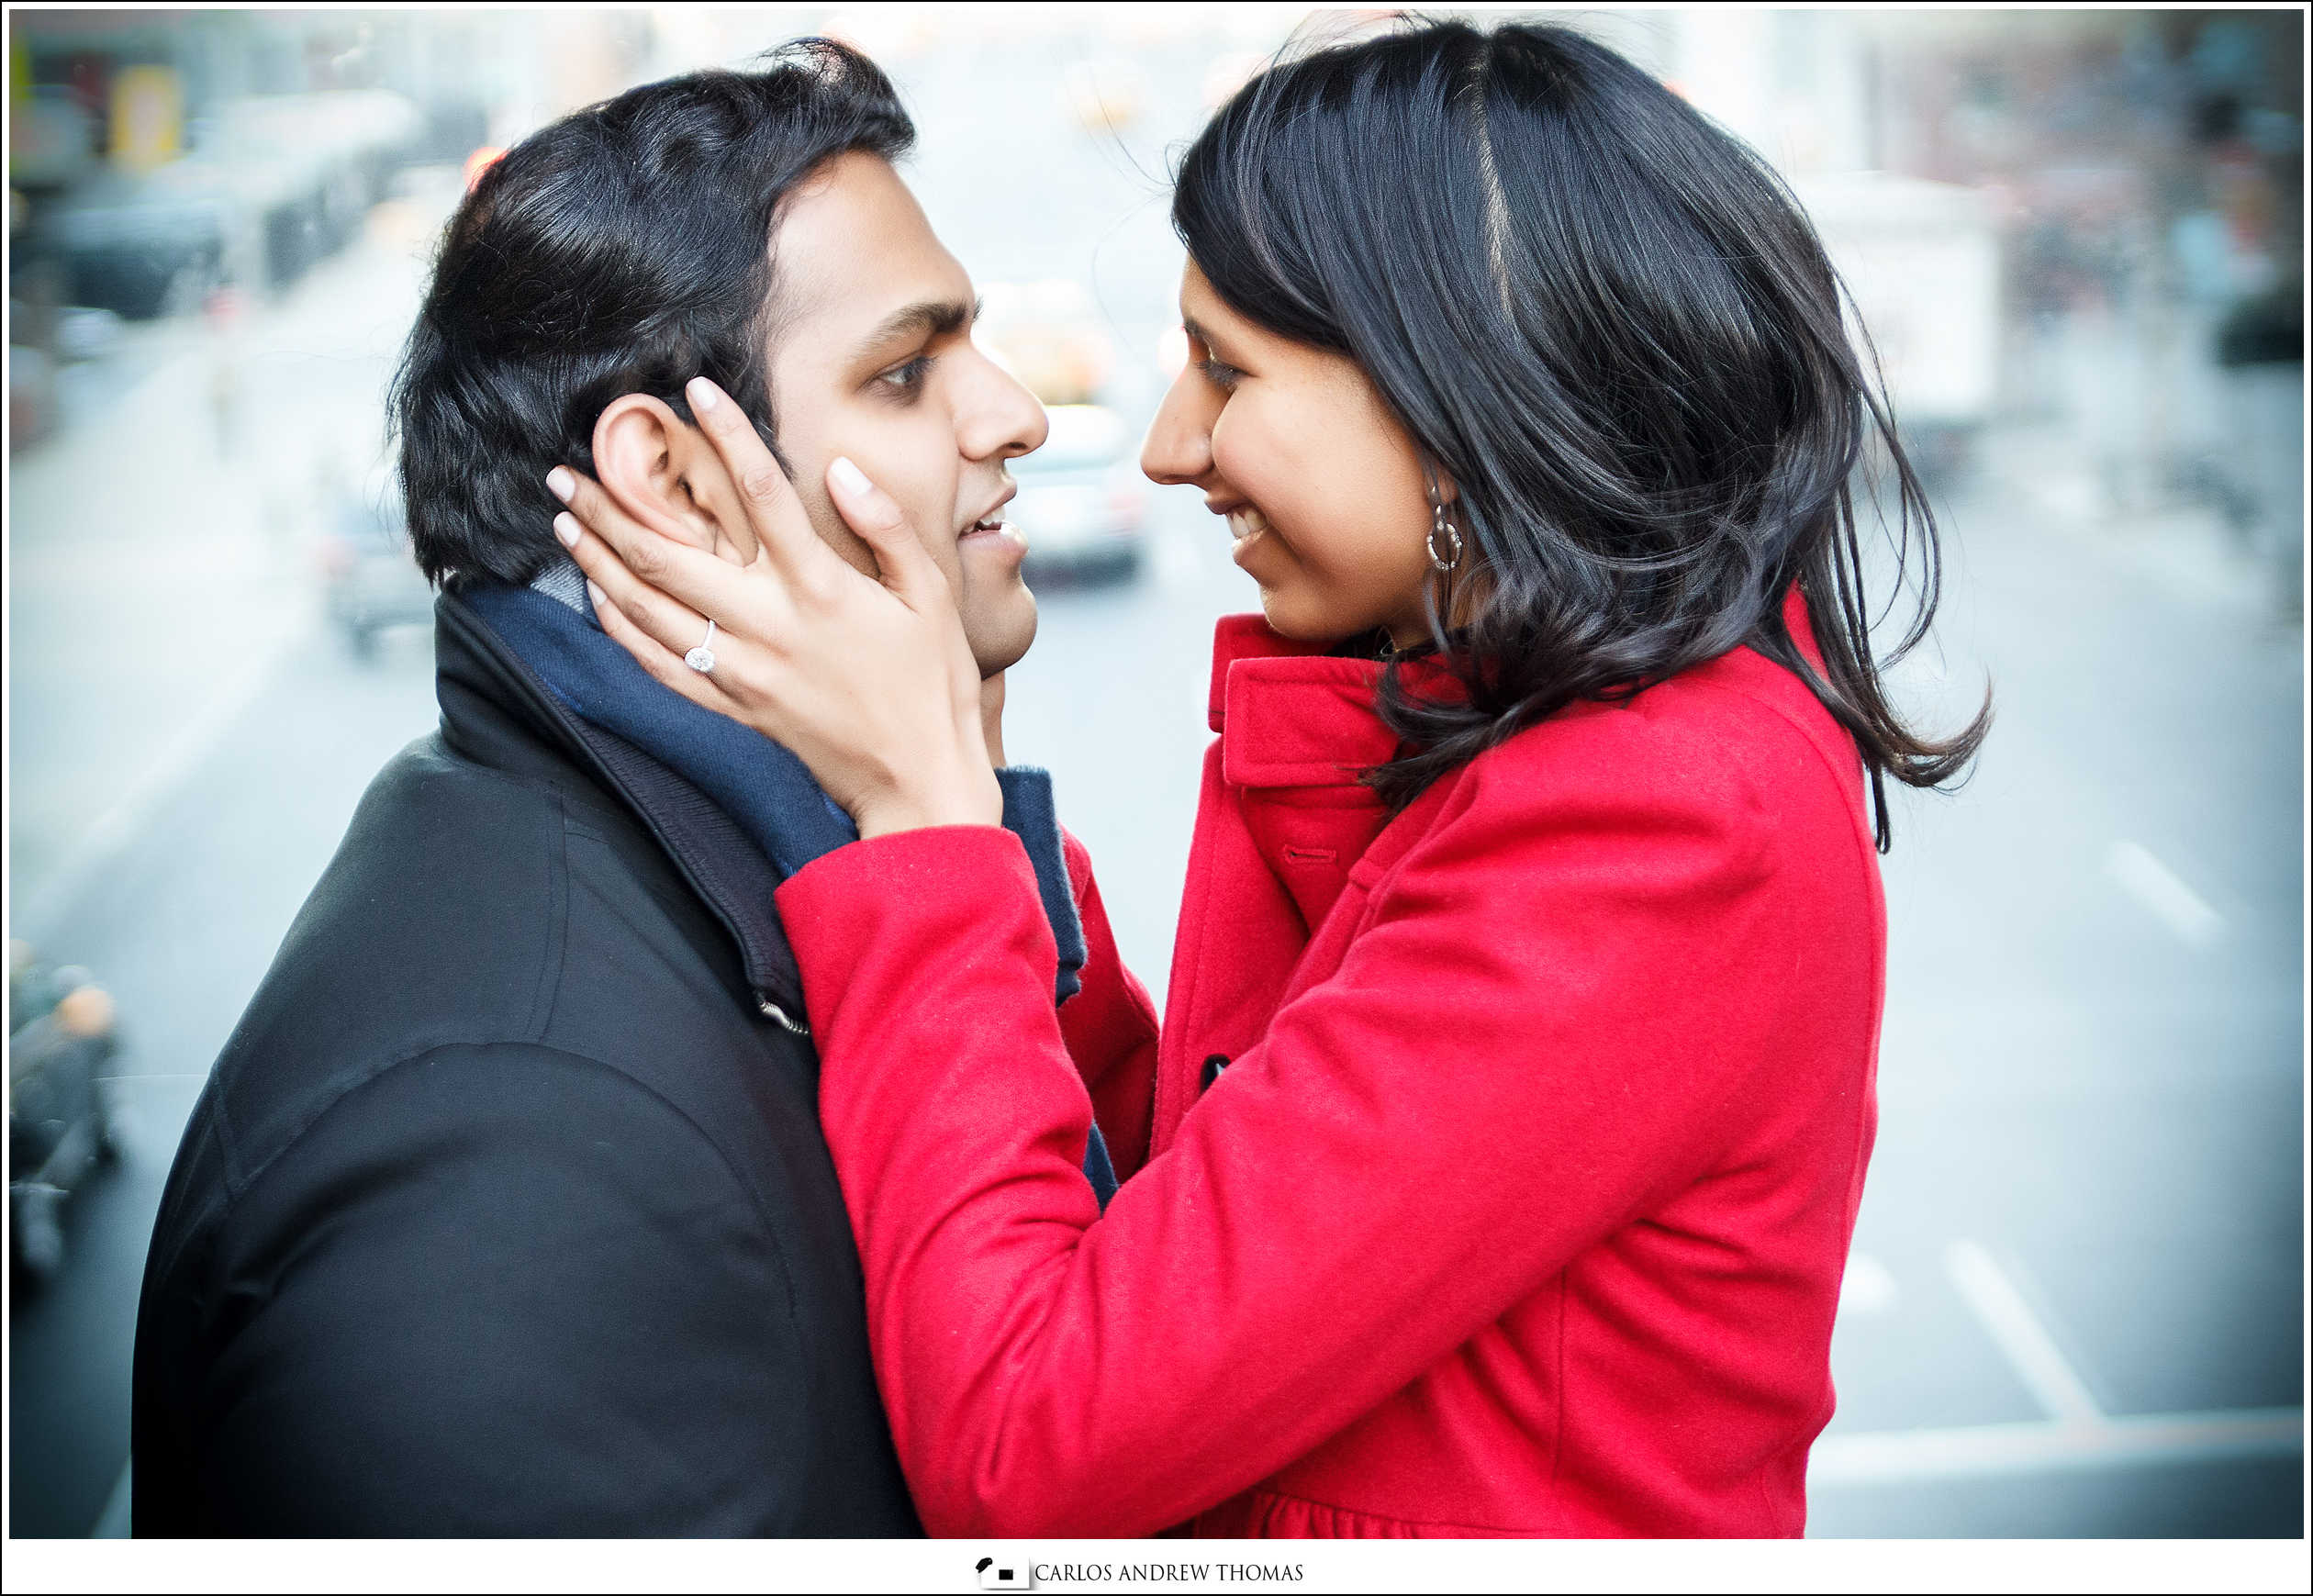 Ava + Hemang E-session | Highline Park, NYC